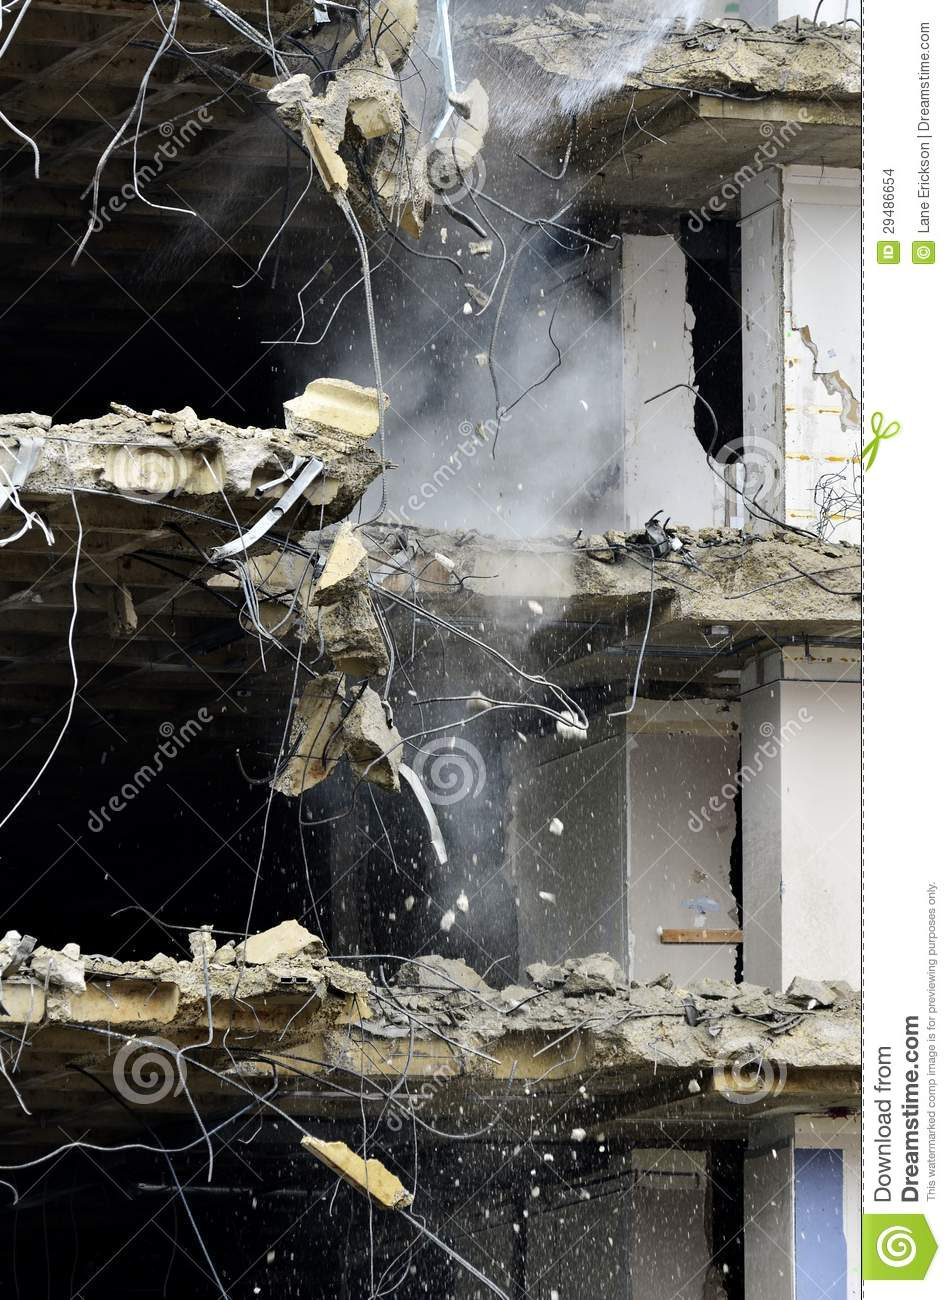 Building Falling Down : Building collapsing or falling down stock images image